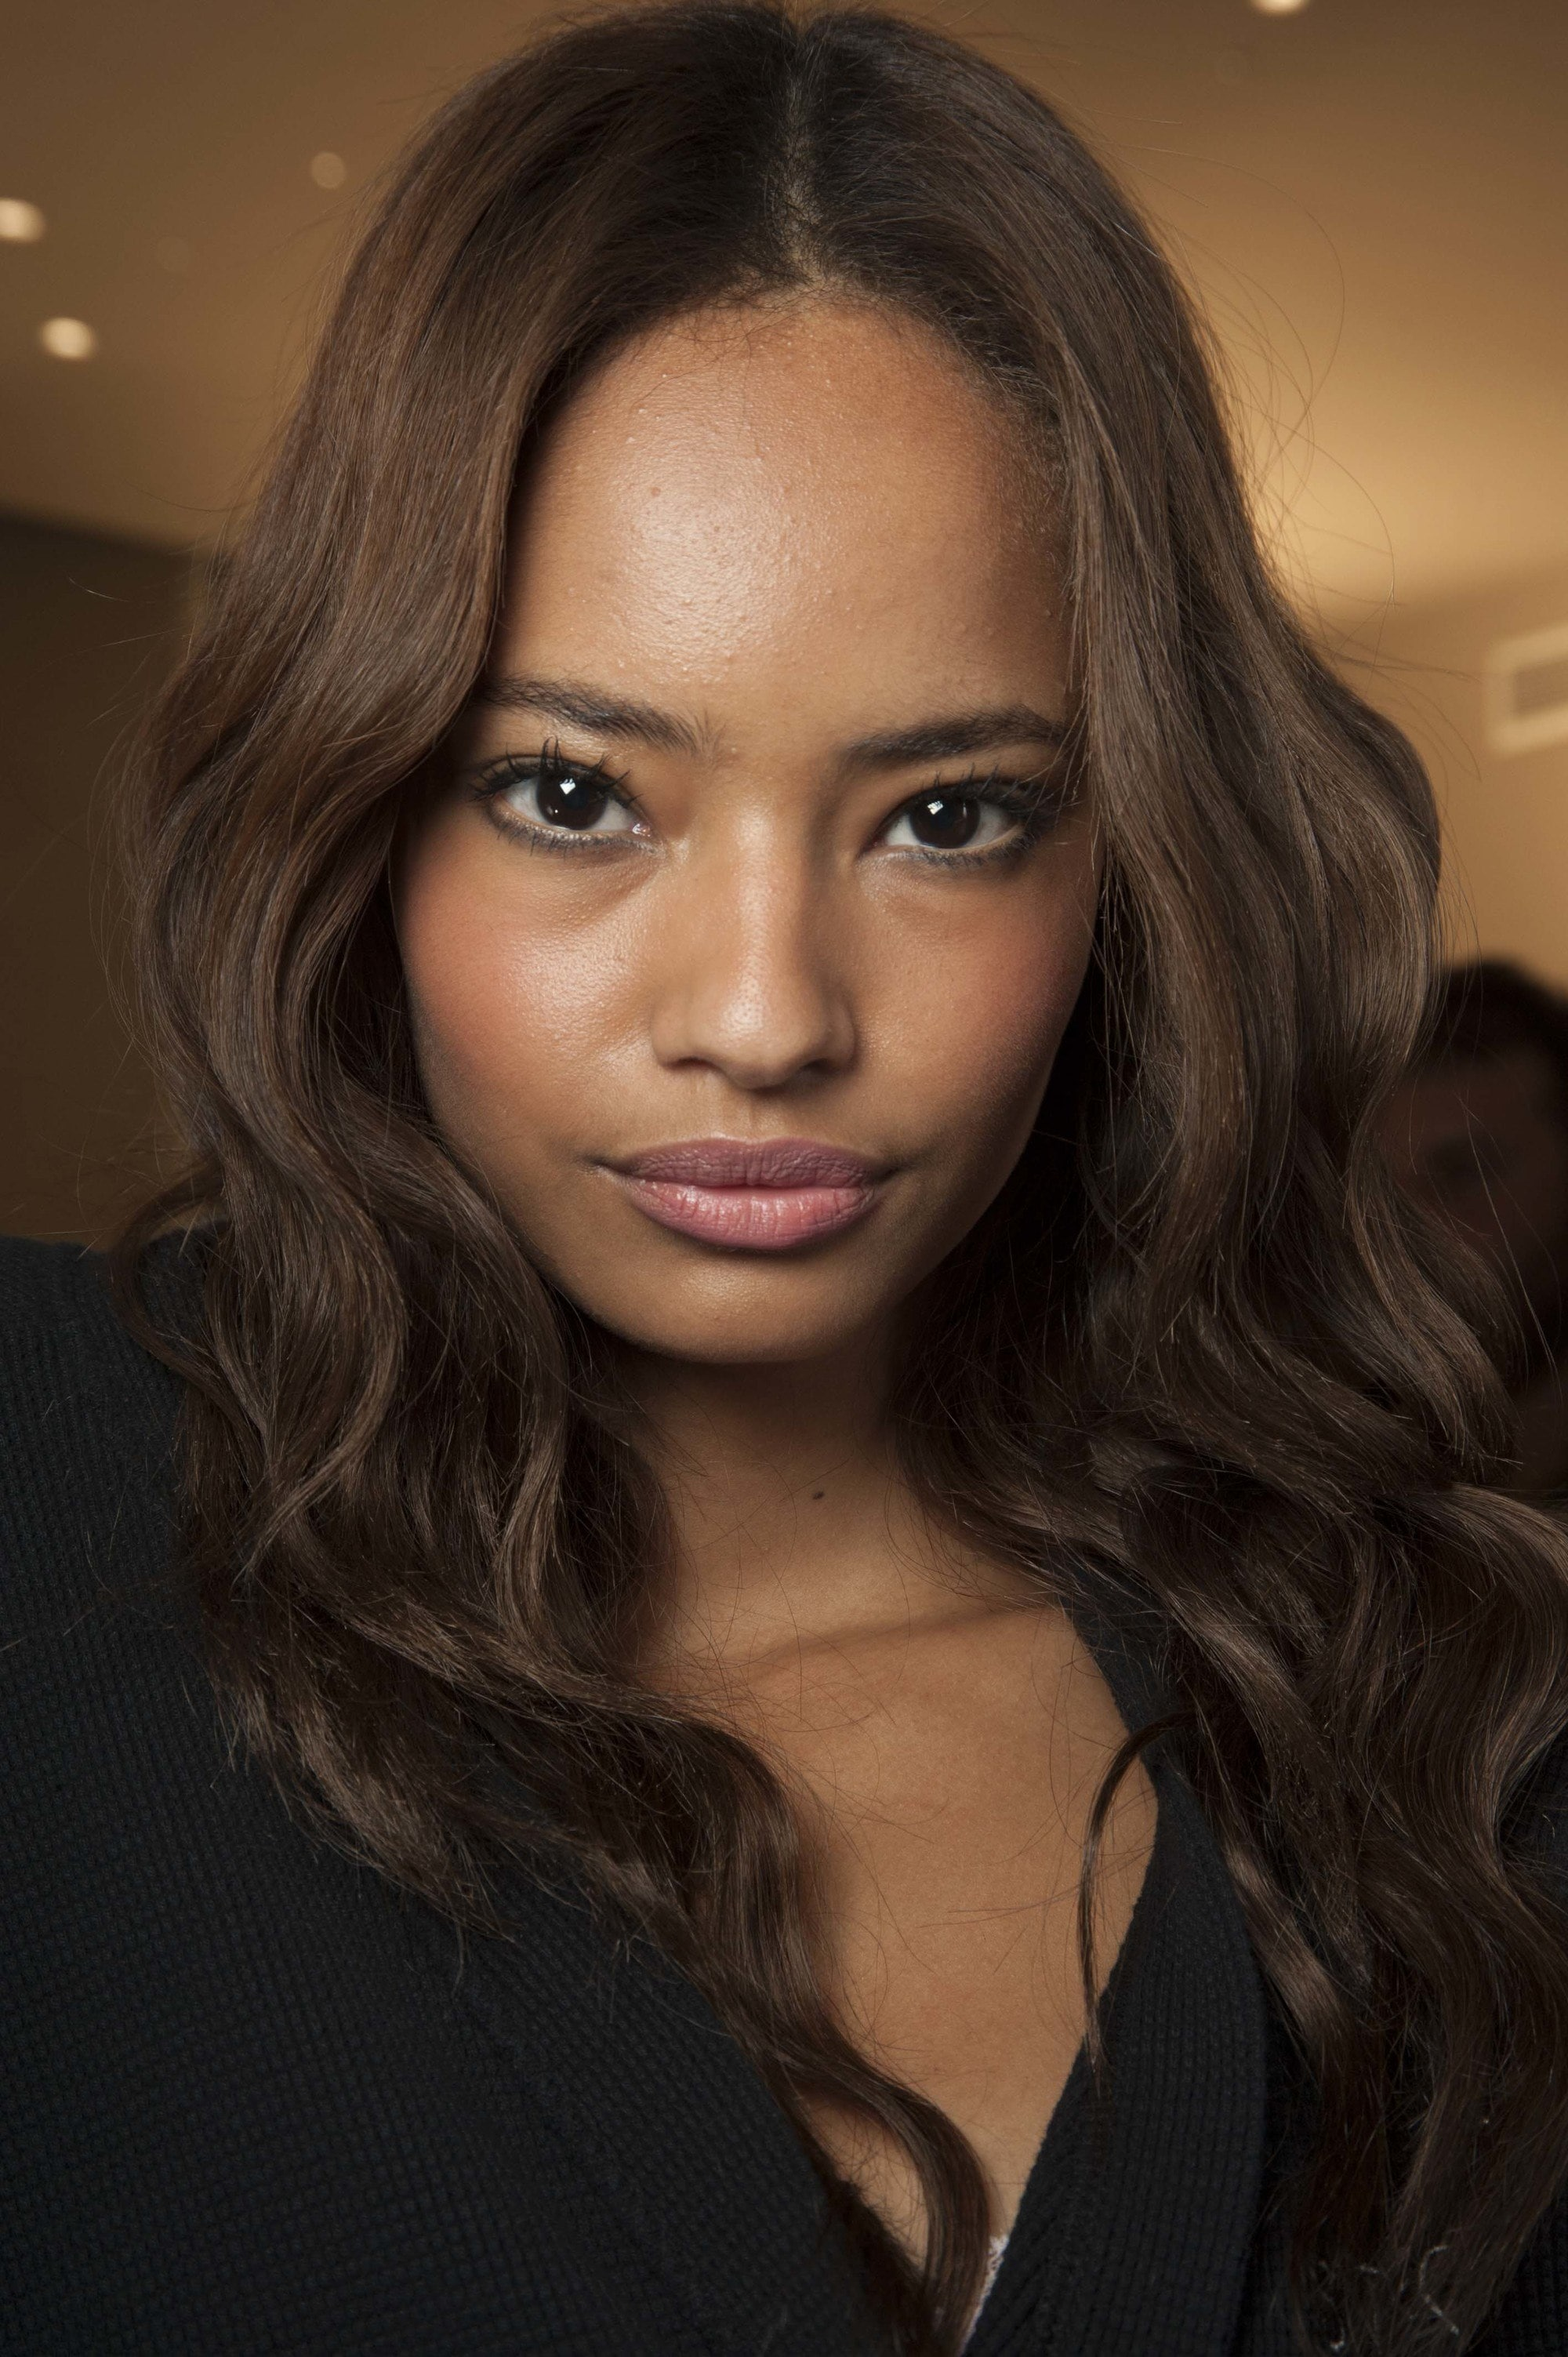 The 10 Best Hair Colors For Morena Skin All Things Hair